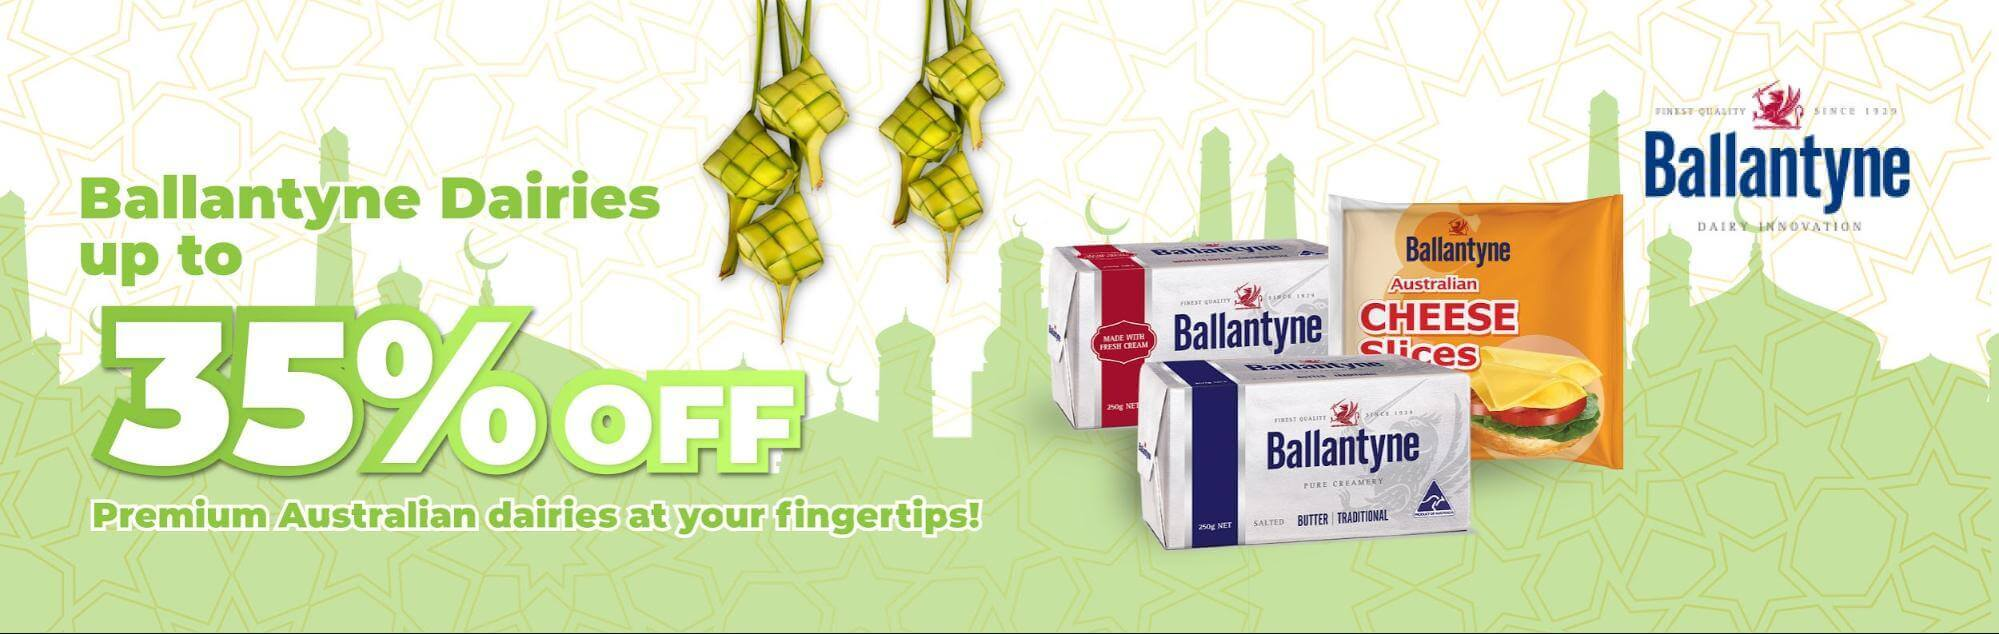 Ballantyne promo up to 35% off